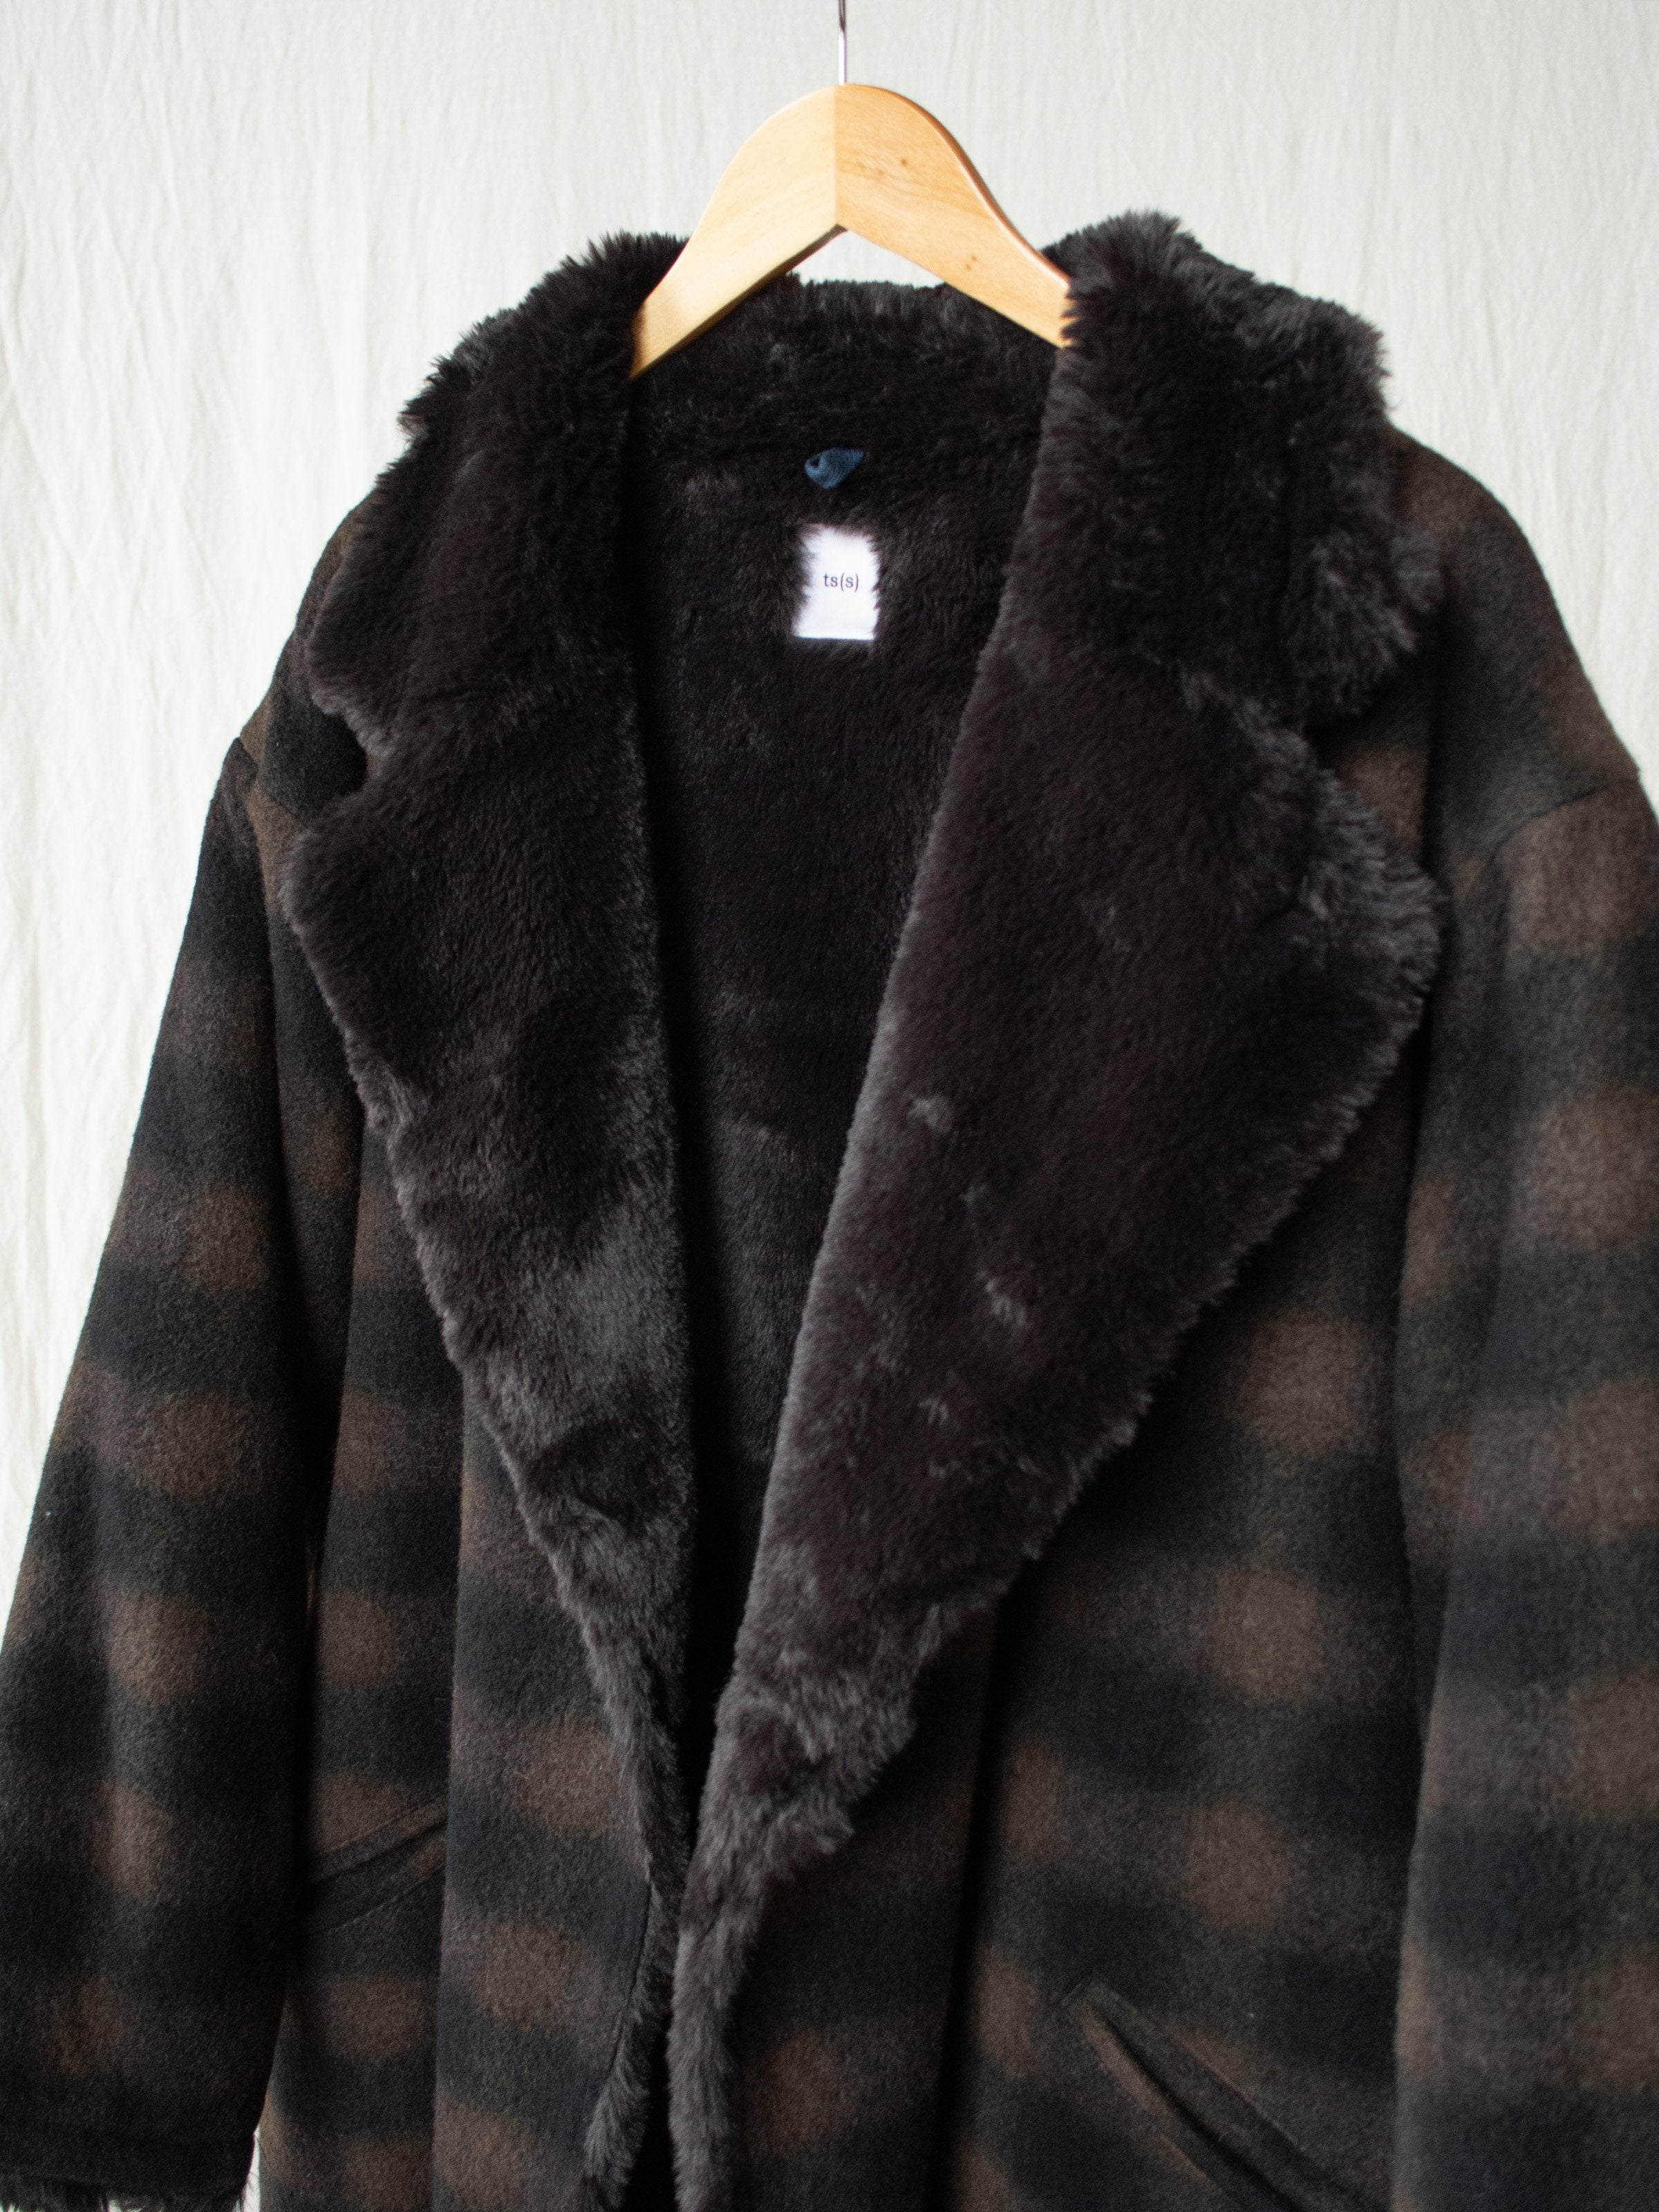 Namu Shop - ts(s) Boa Lined Belted Coat - Ombre Plaid Wool